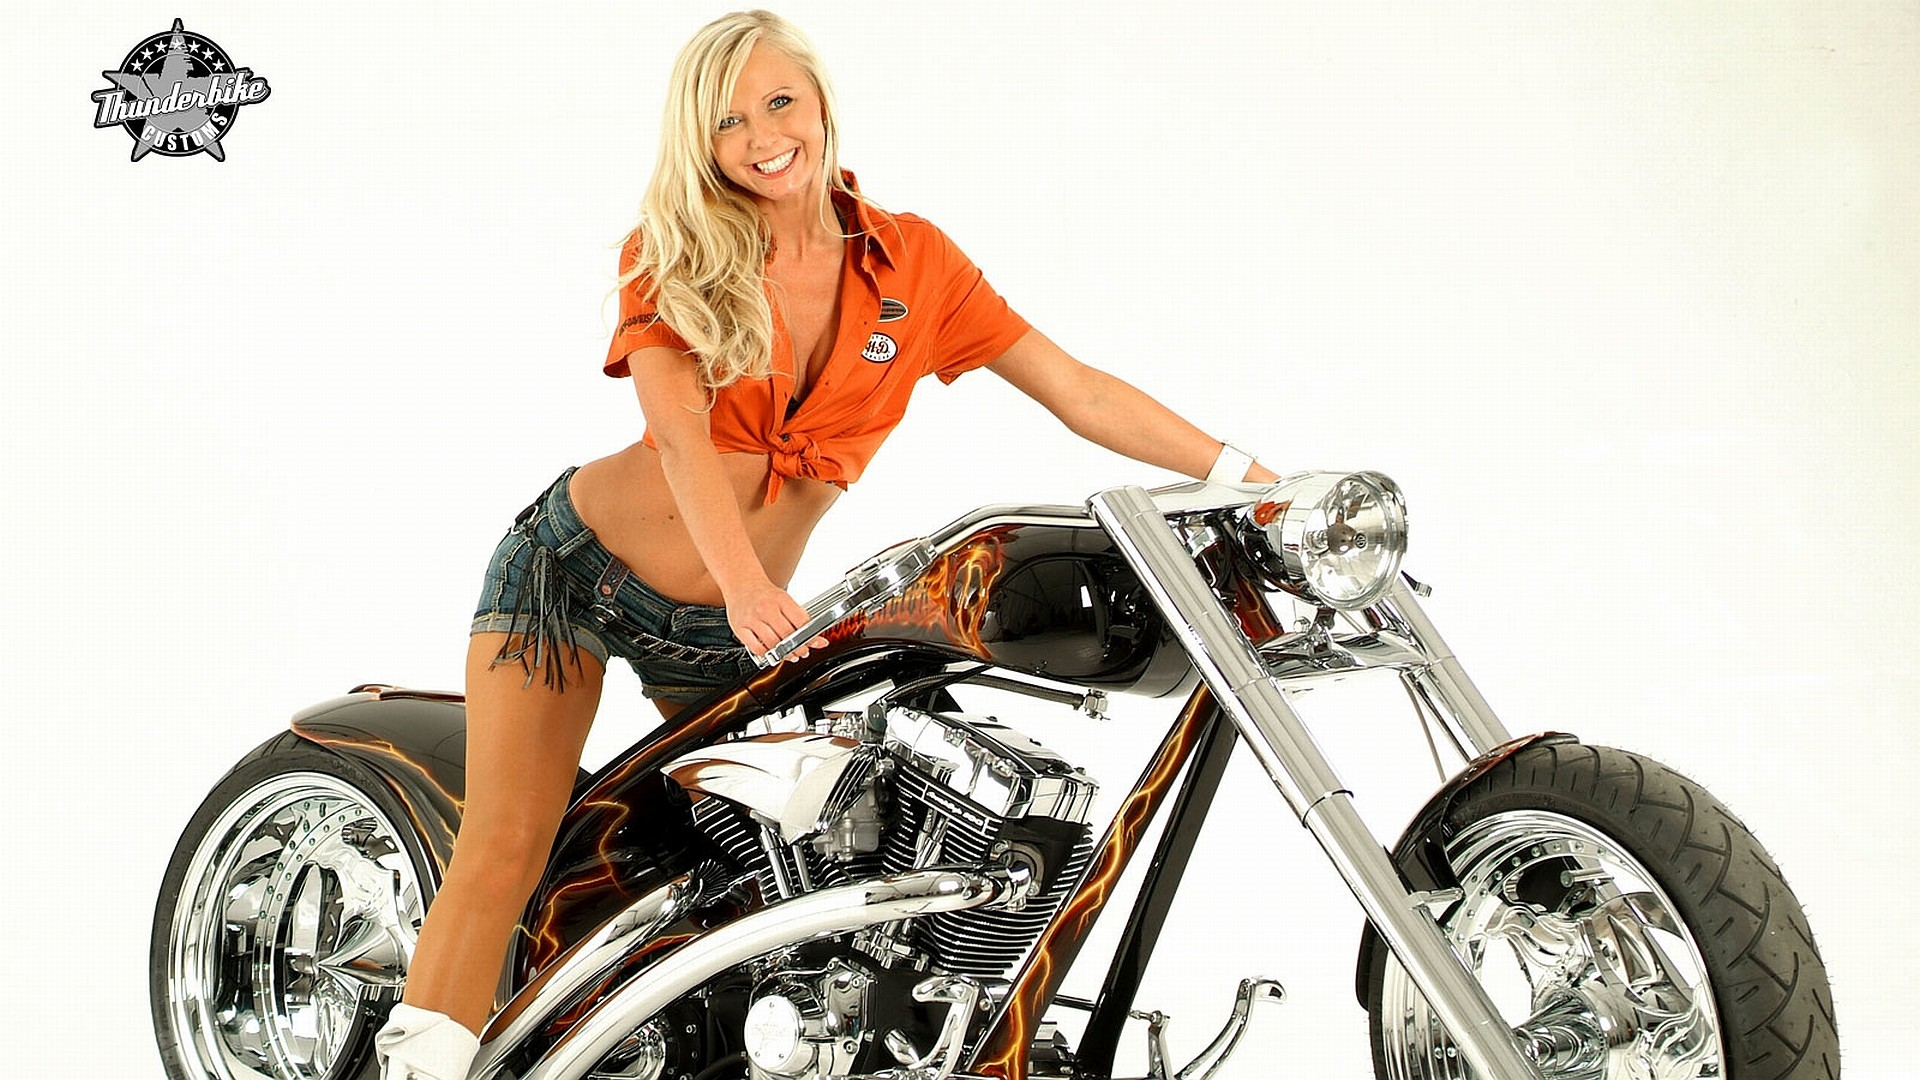 Free girls and motorcycles wallpaper background